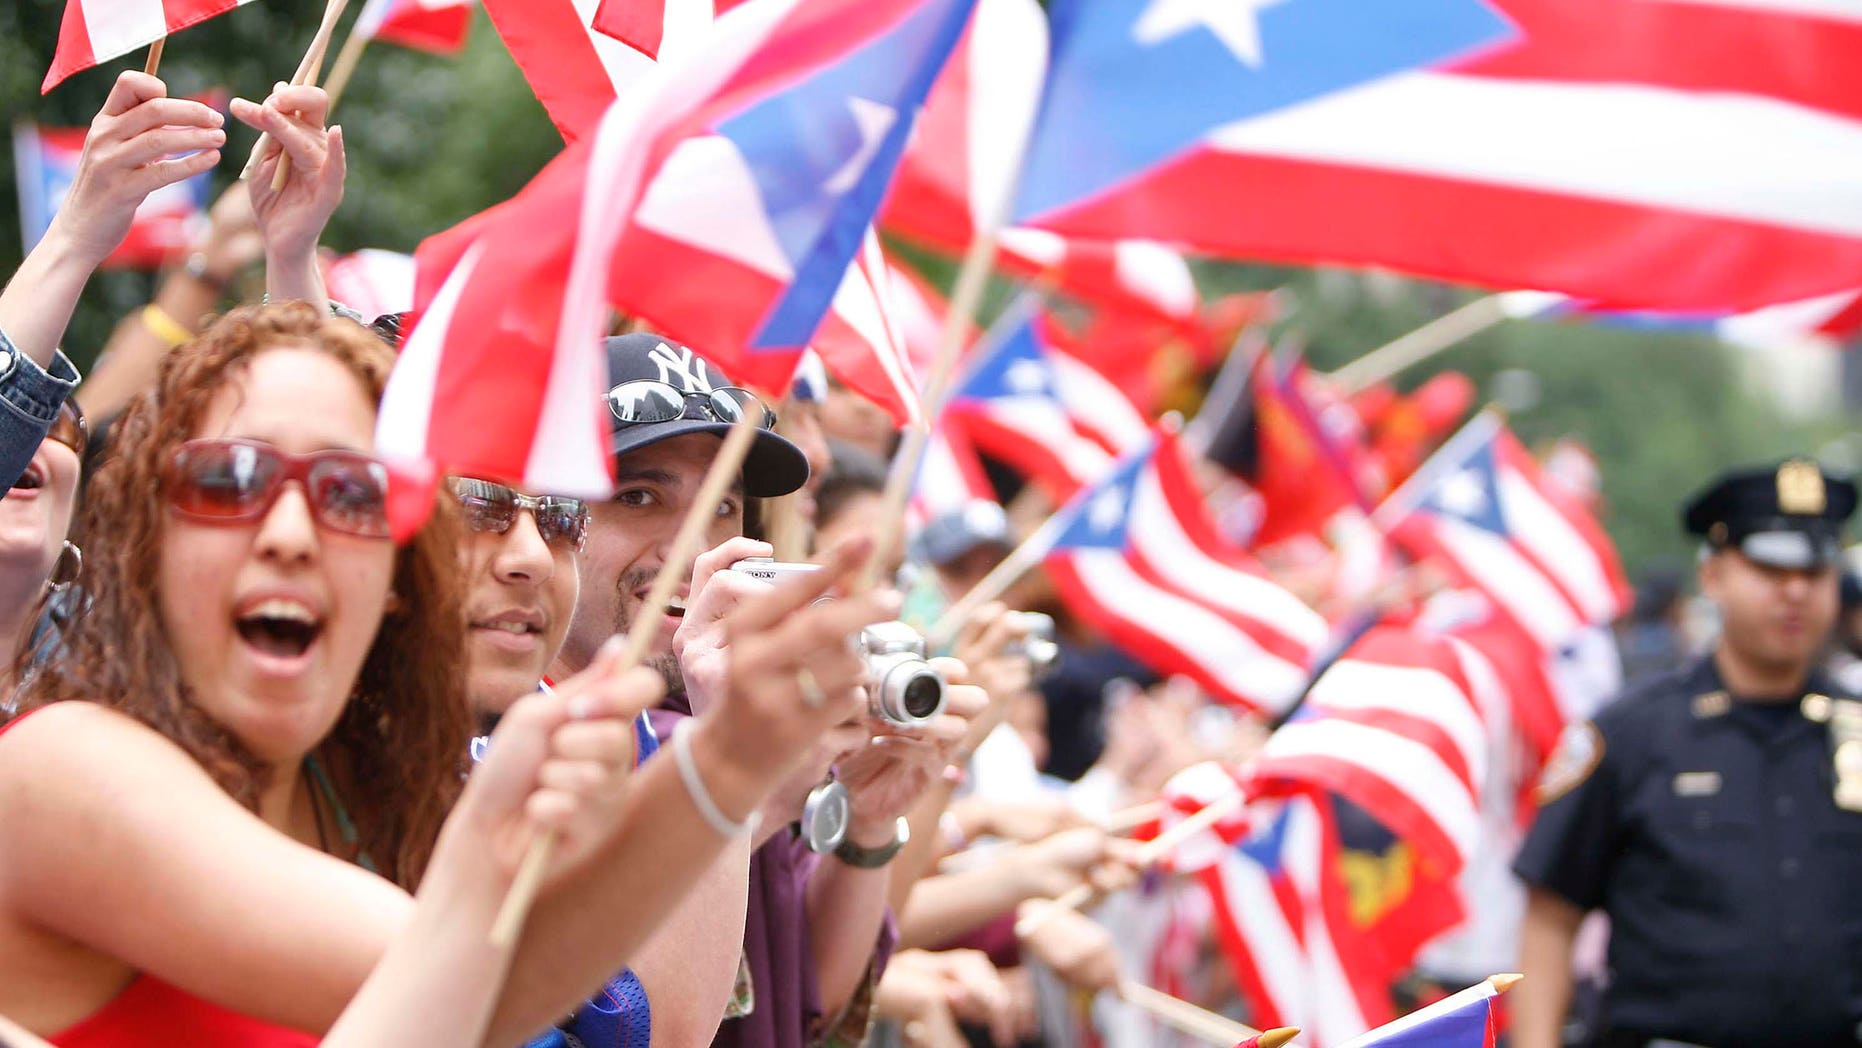 People wave flags during the 50th Anniversary of the National Puerto Rican Day Parade along 5th Avenue in 2007.